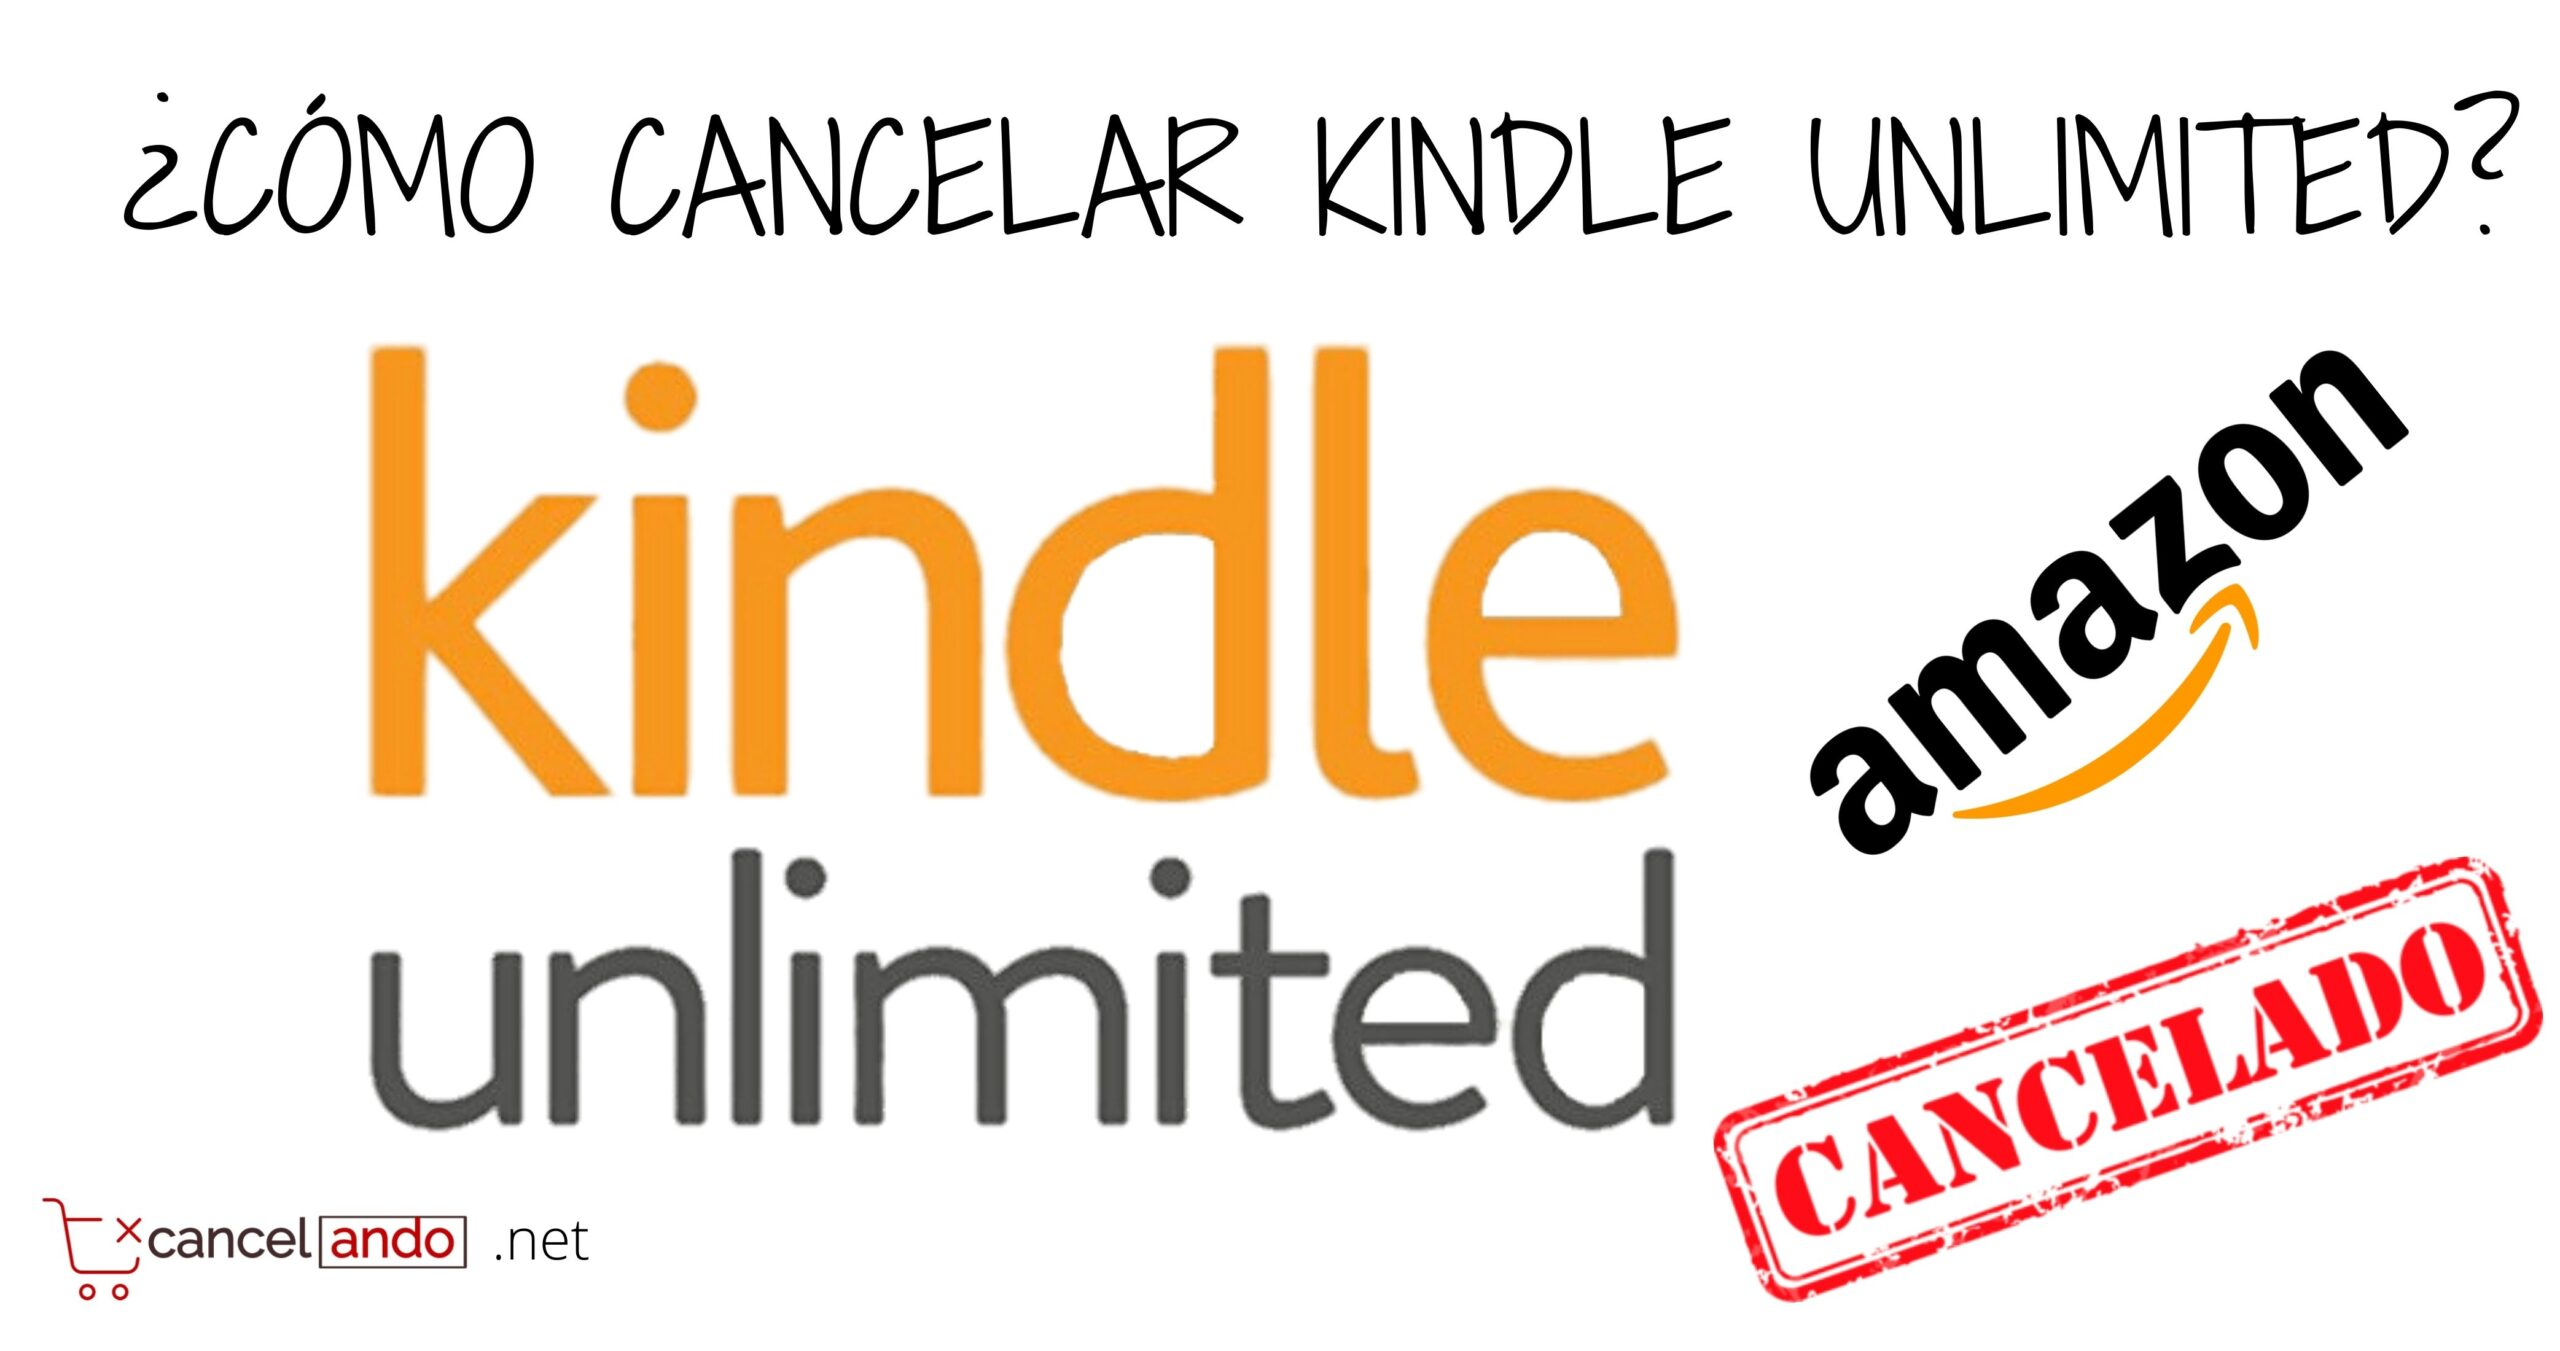 cancelar kindle unlimited